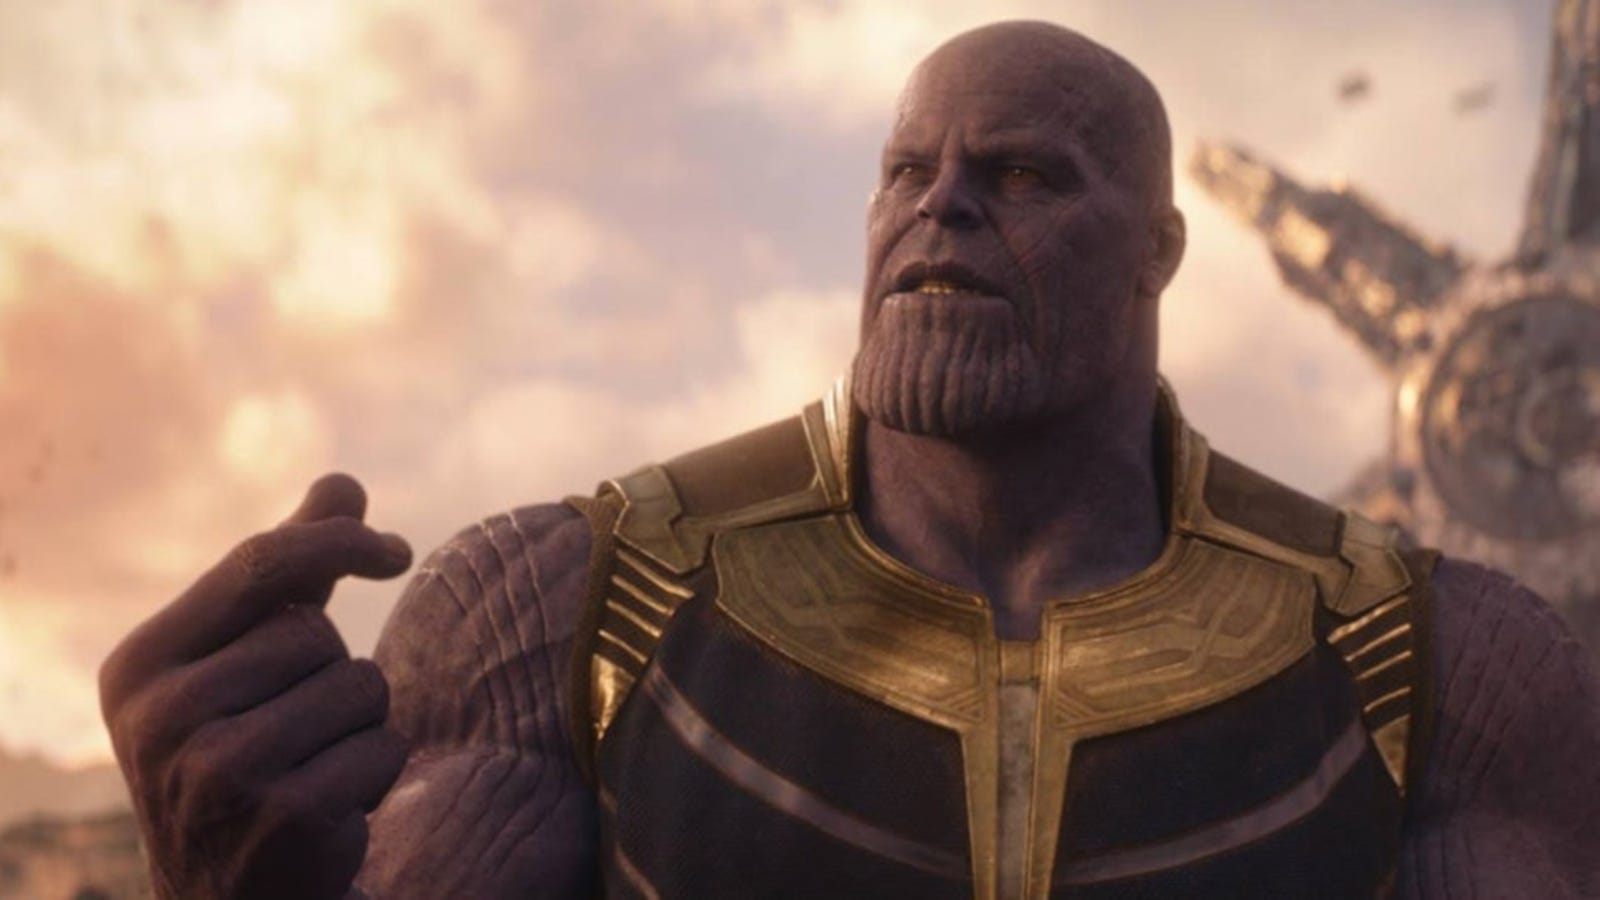 #Thanos in #InfinityWar which is a #marvel movie with the #avengers in the #mcu which is a prelude to #AvengersEndgame and filled with enough #hashtags to make the sanest man #mad.